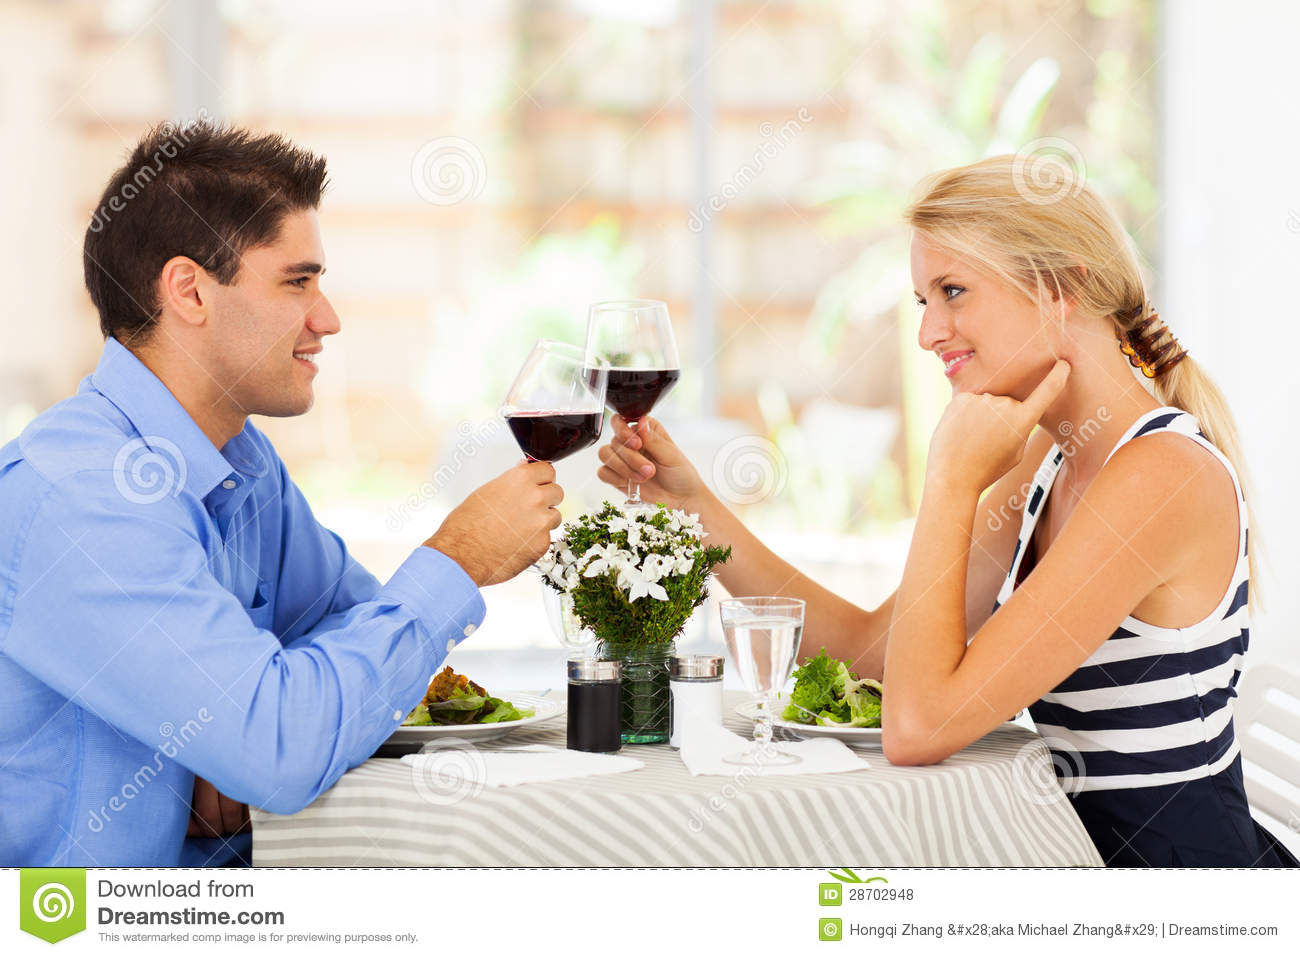 Non drinker dating a drinker